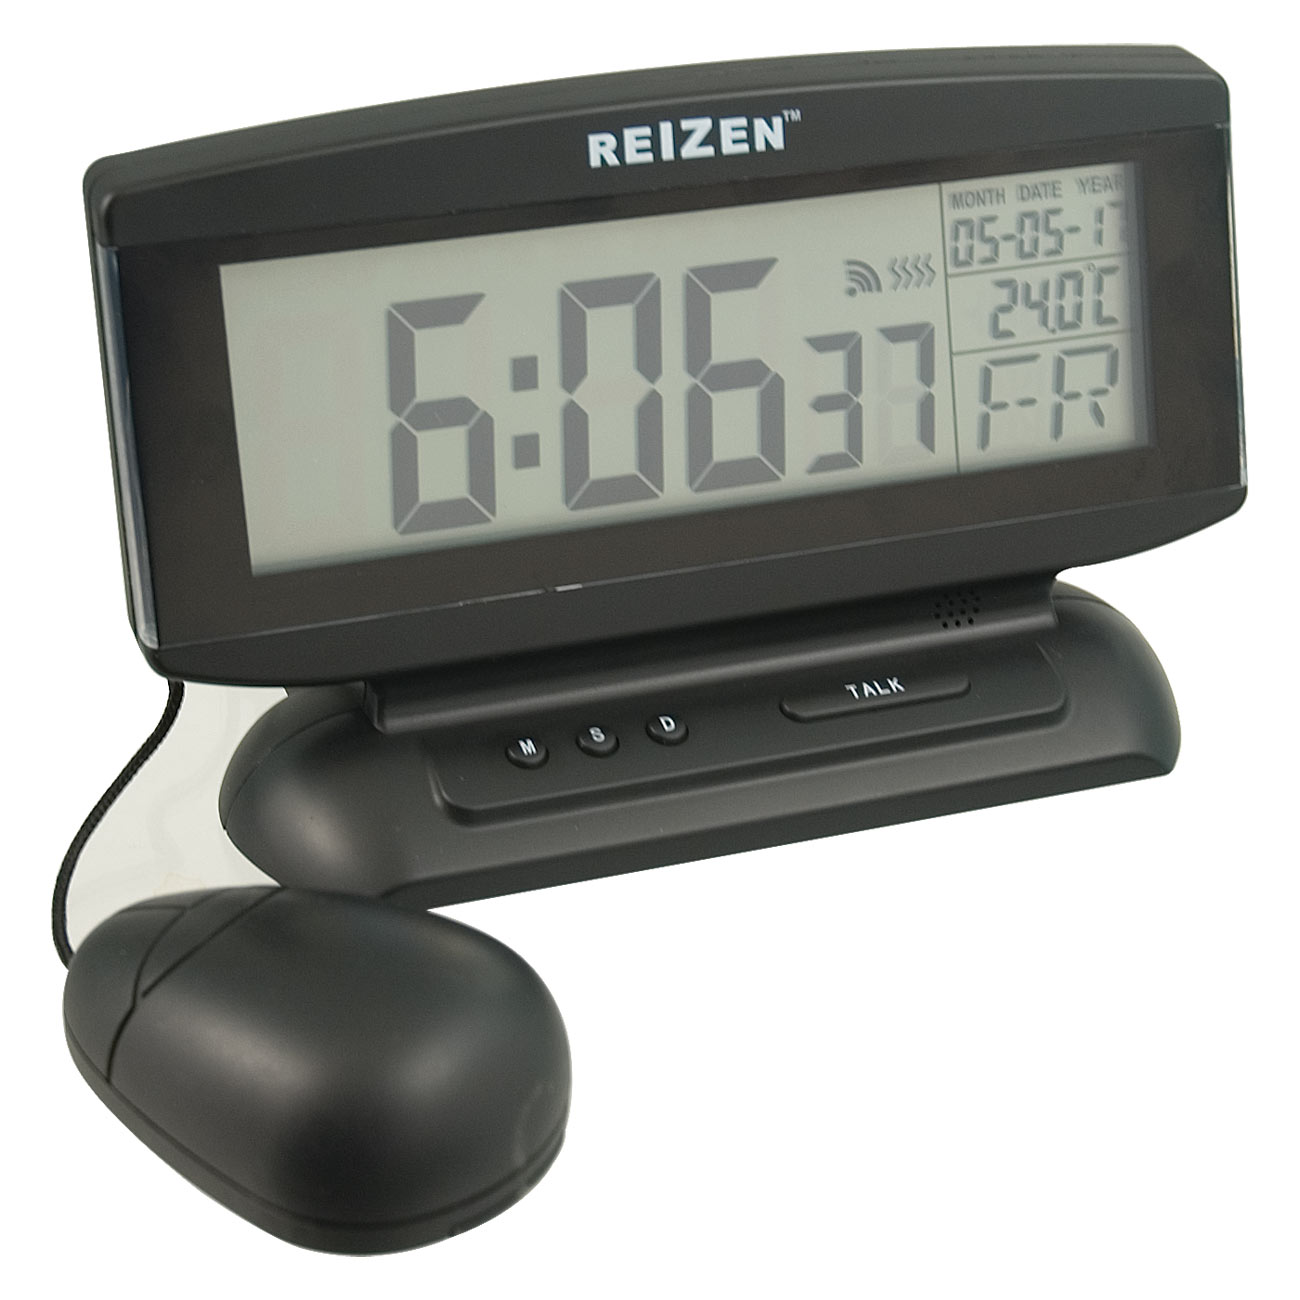 Talking Clock with Large LCD Display and Vibrator Price: $29.95